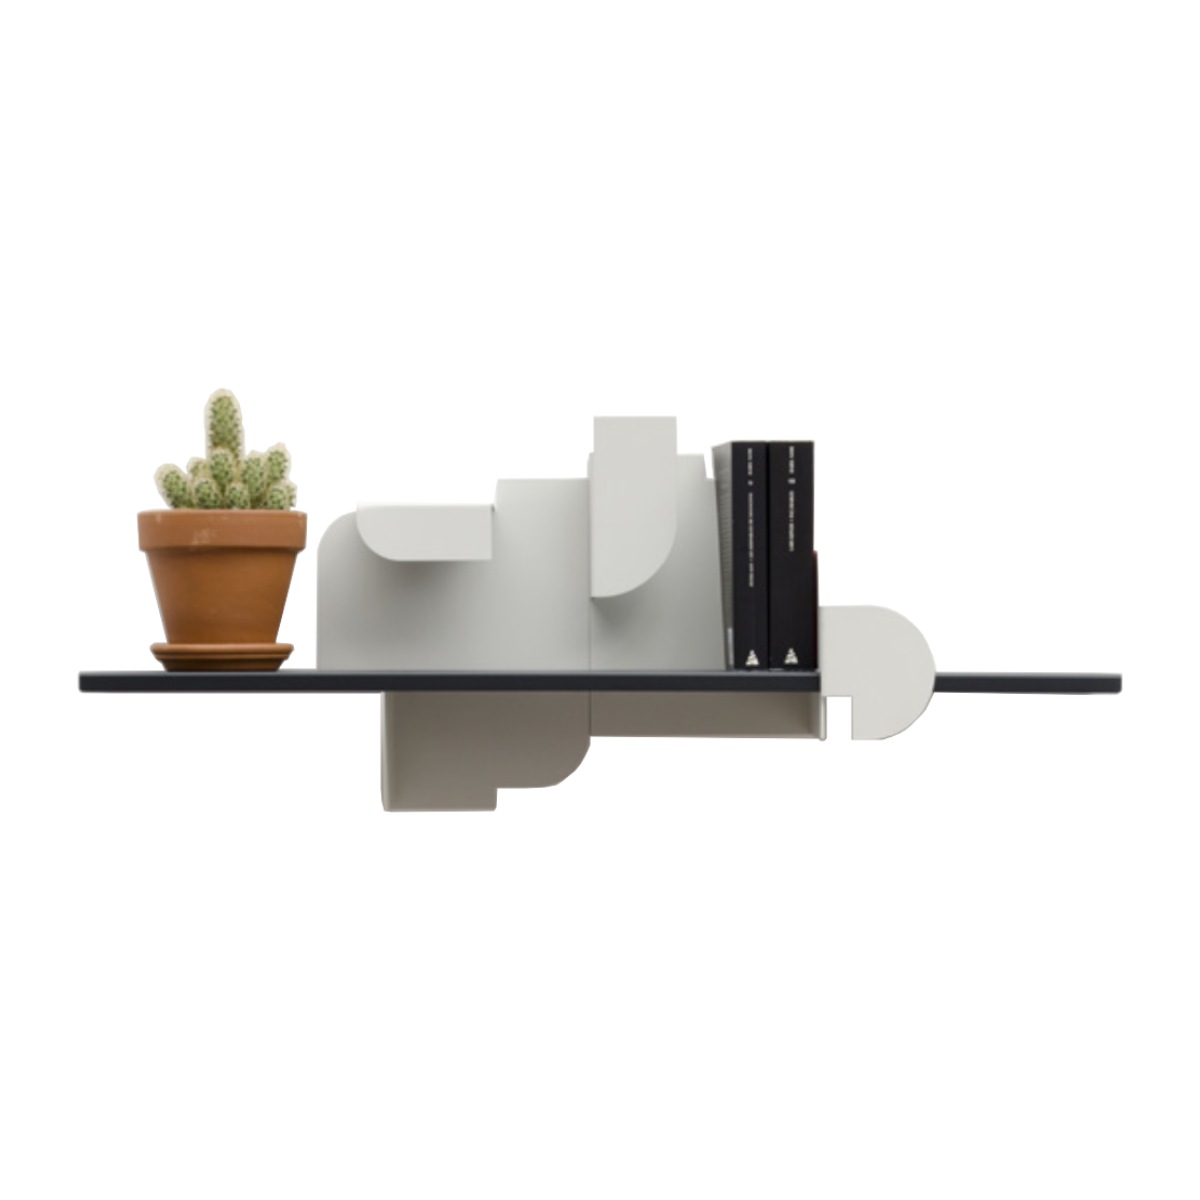 Presse-Citron URBA01 wall shelf